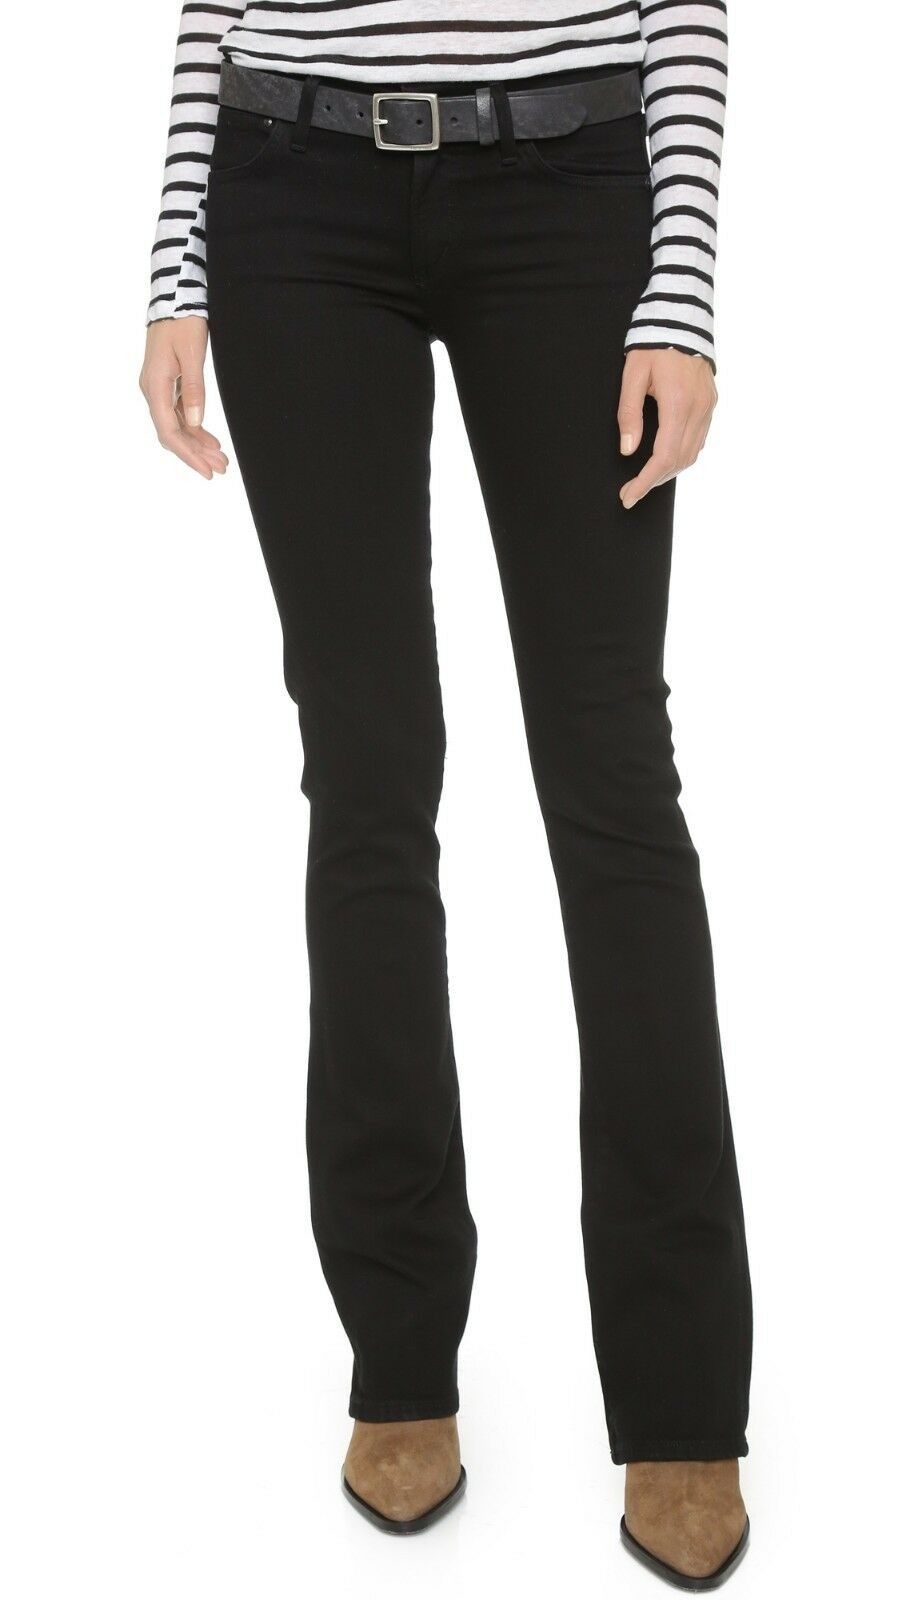 NWT CITIZENS of HUMANITY EMANNUELLE TUXEDO MID-RISE SLIM BOOTCUT JEANS 27